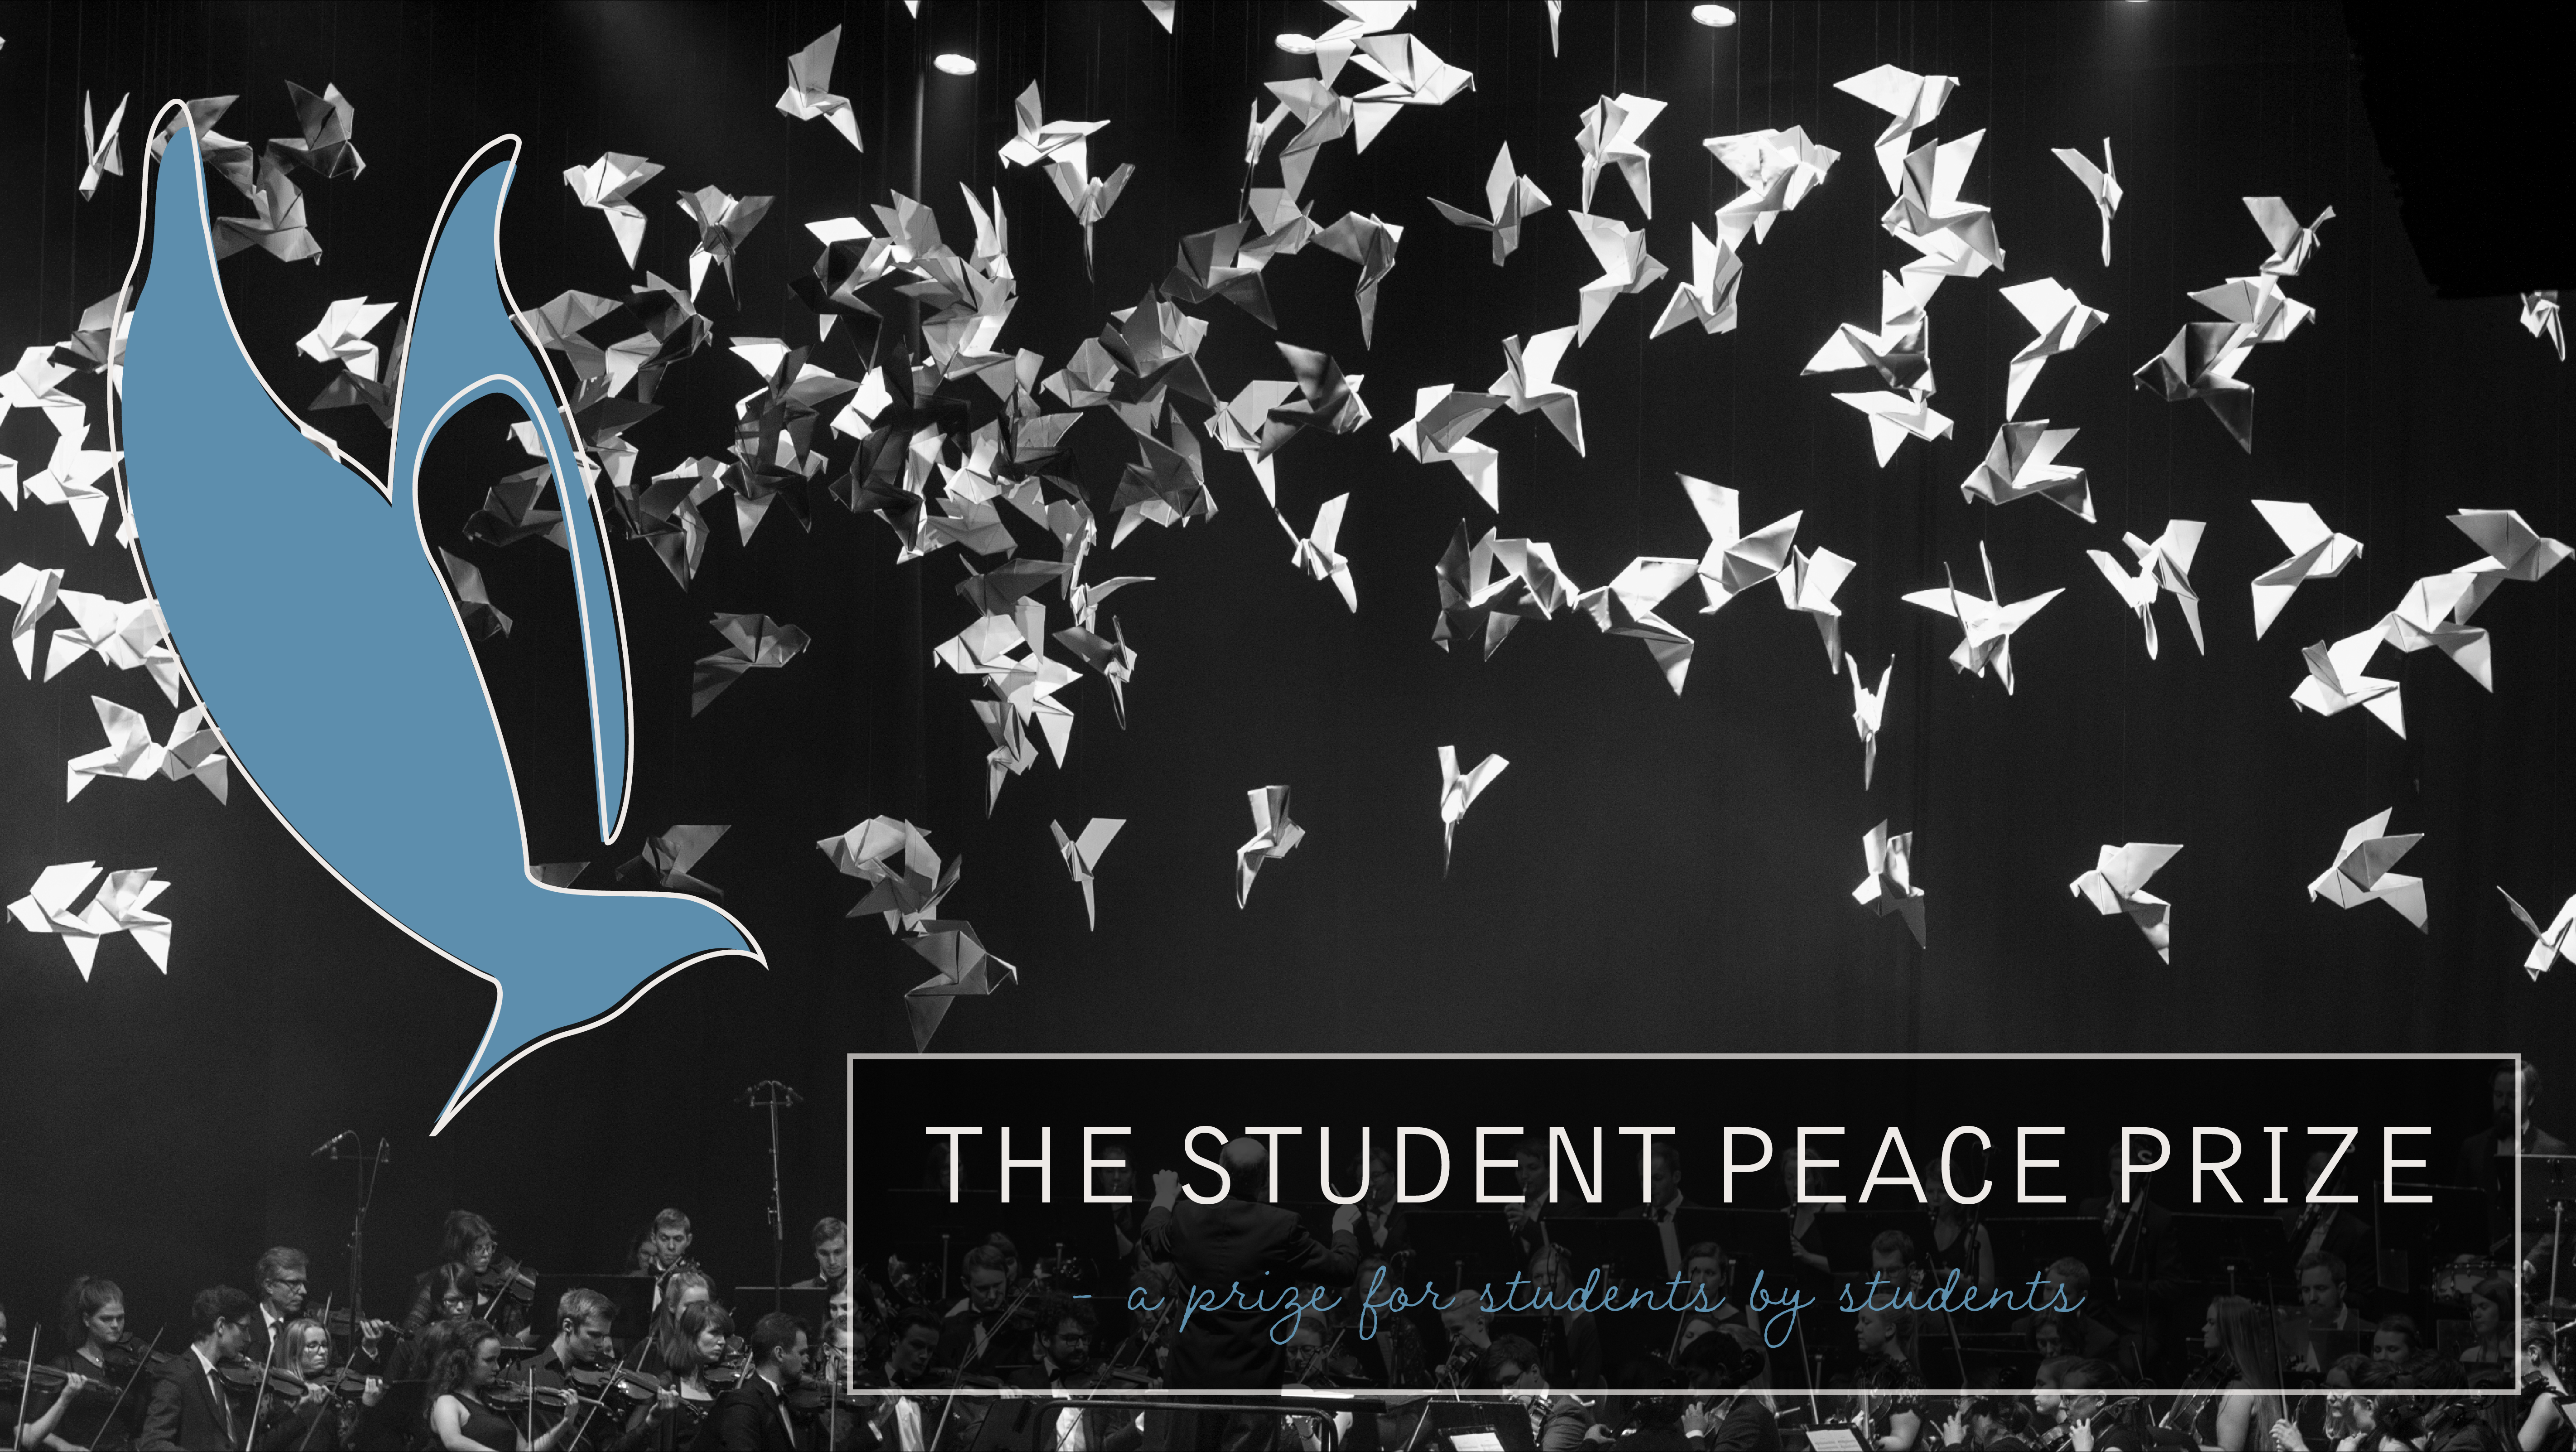 The Student Peace Prize